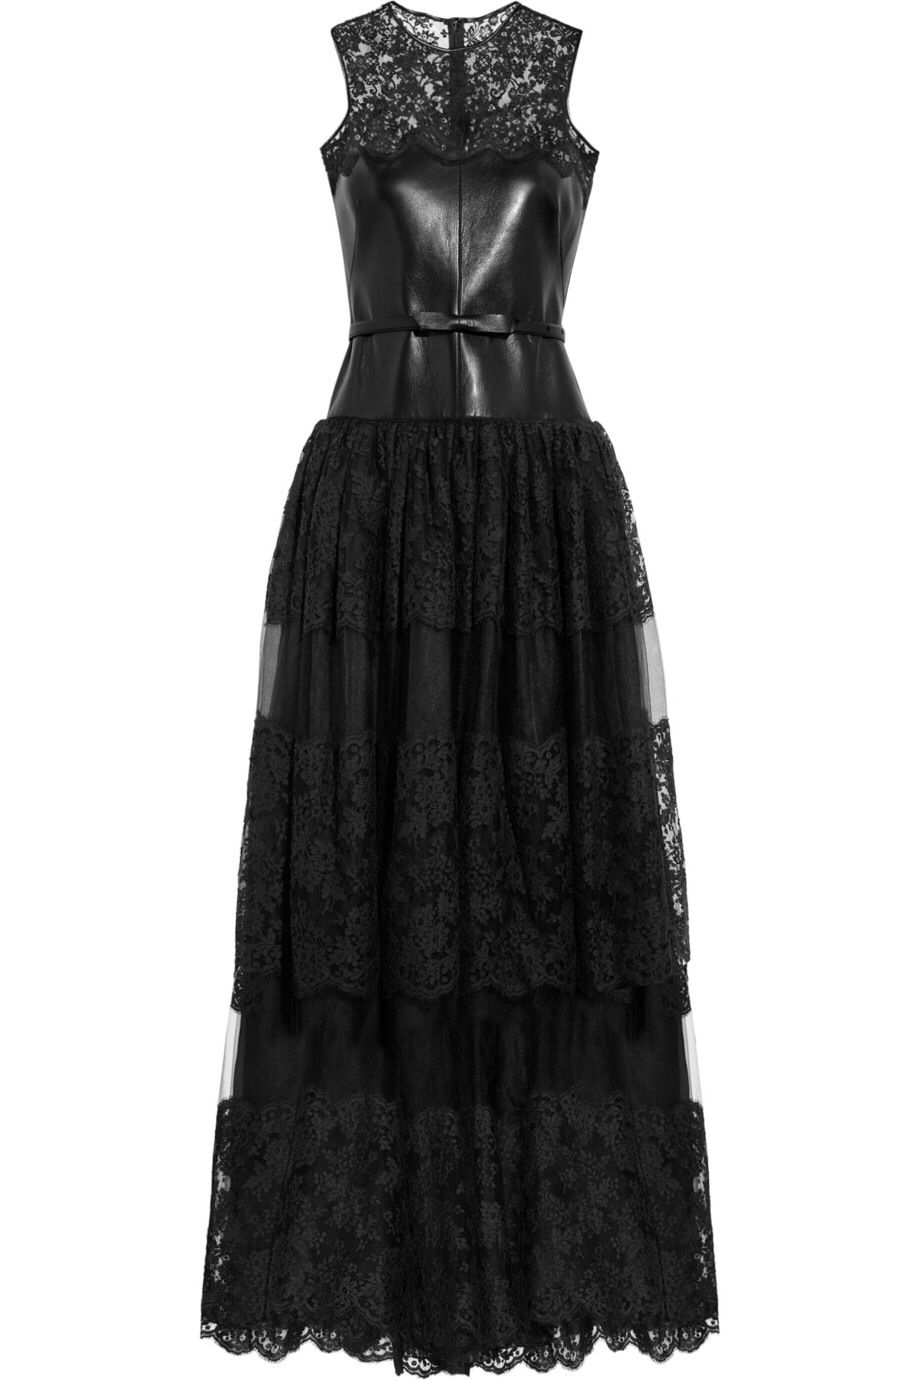 this nice black leather dress for the maid of honor nurse